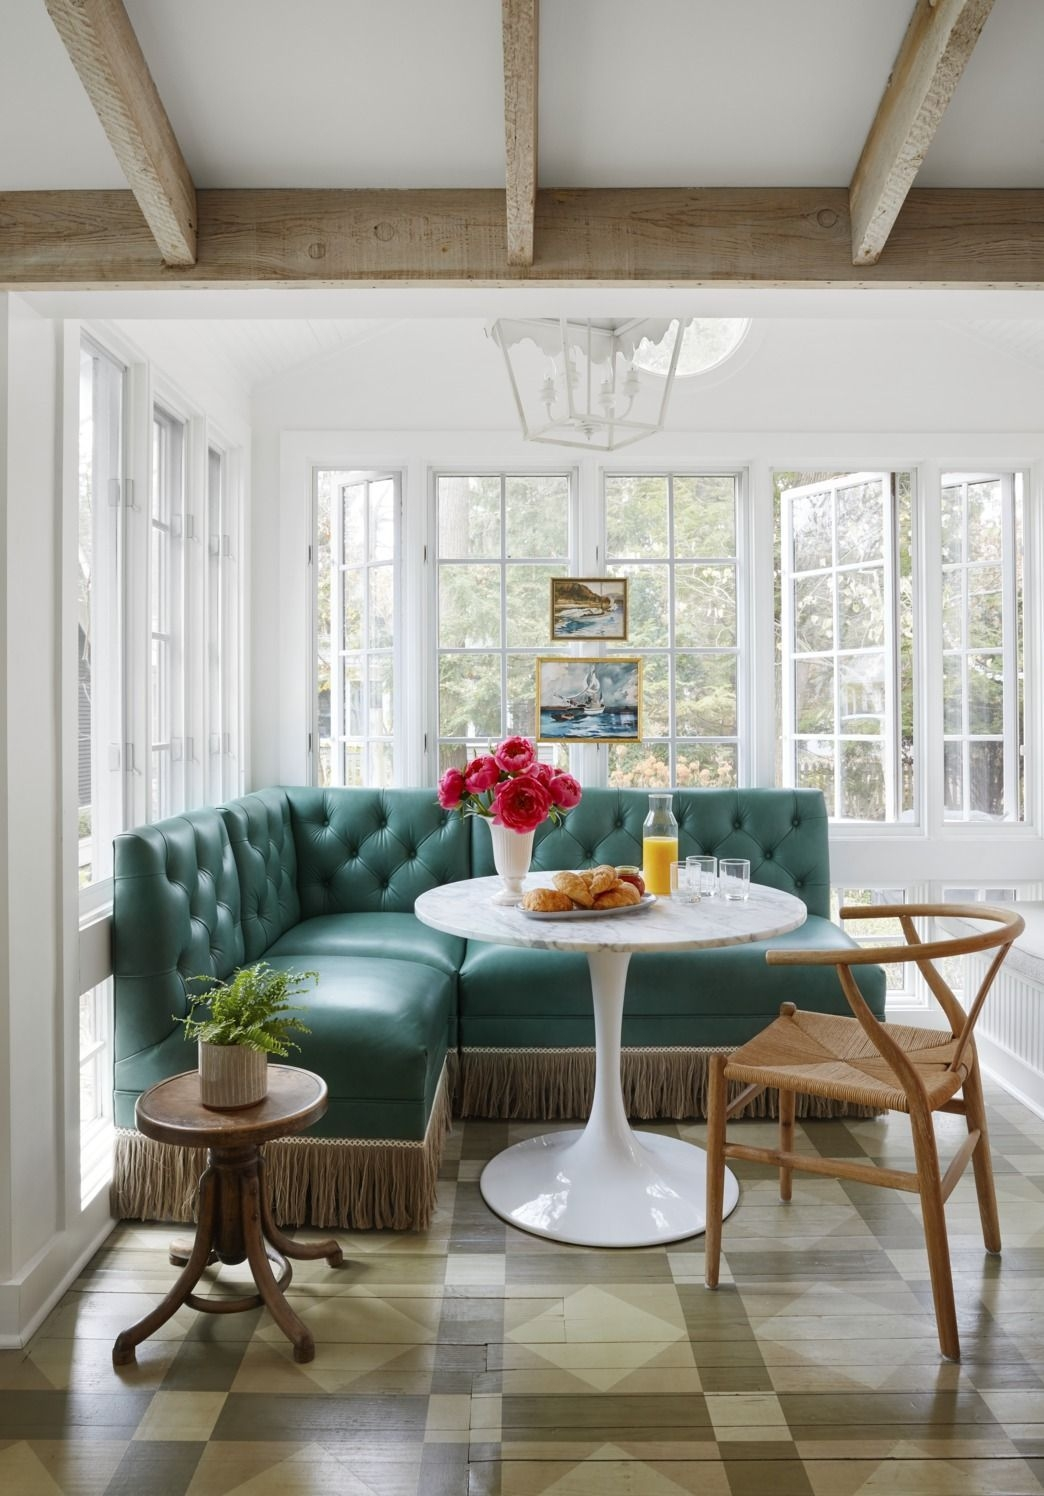 Beaut Revamp Your Dining Room With These Gorgeous Decorating Ideas On Pinterest Home Decor Country Vrogue Co